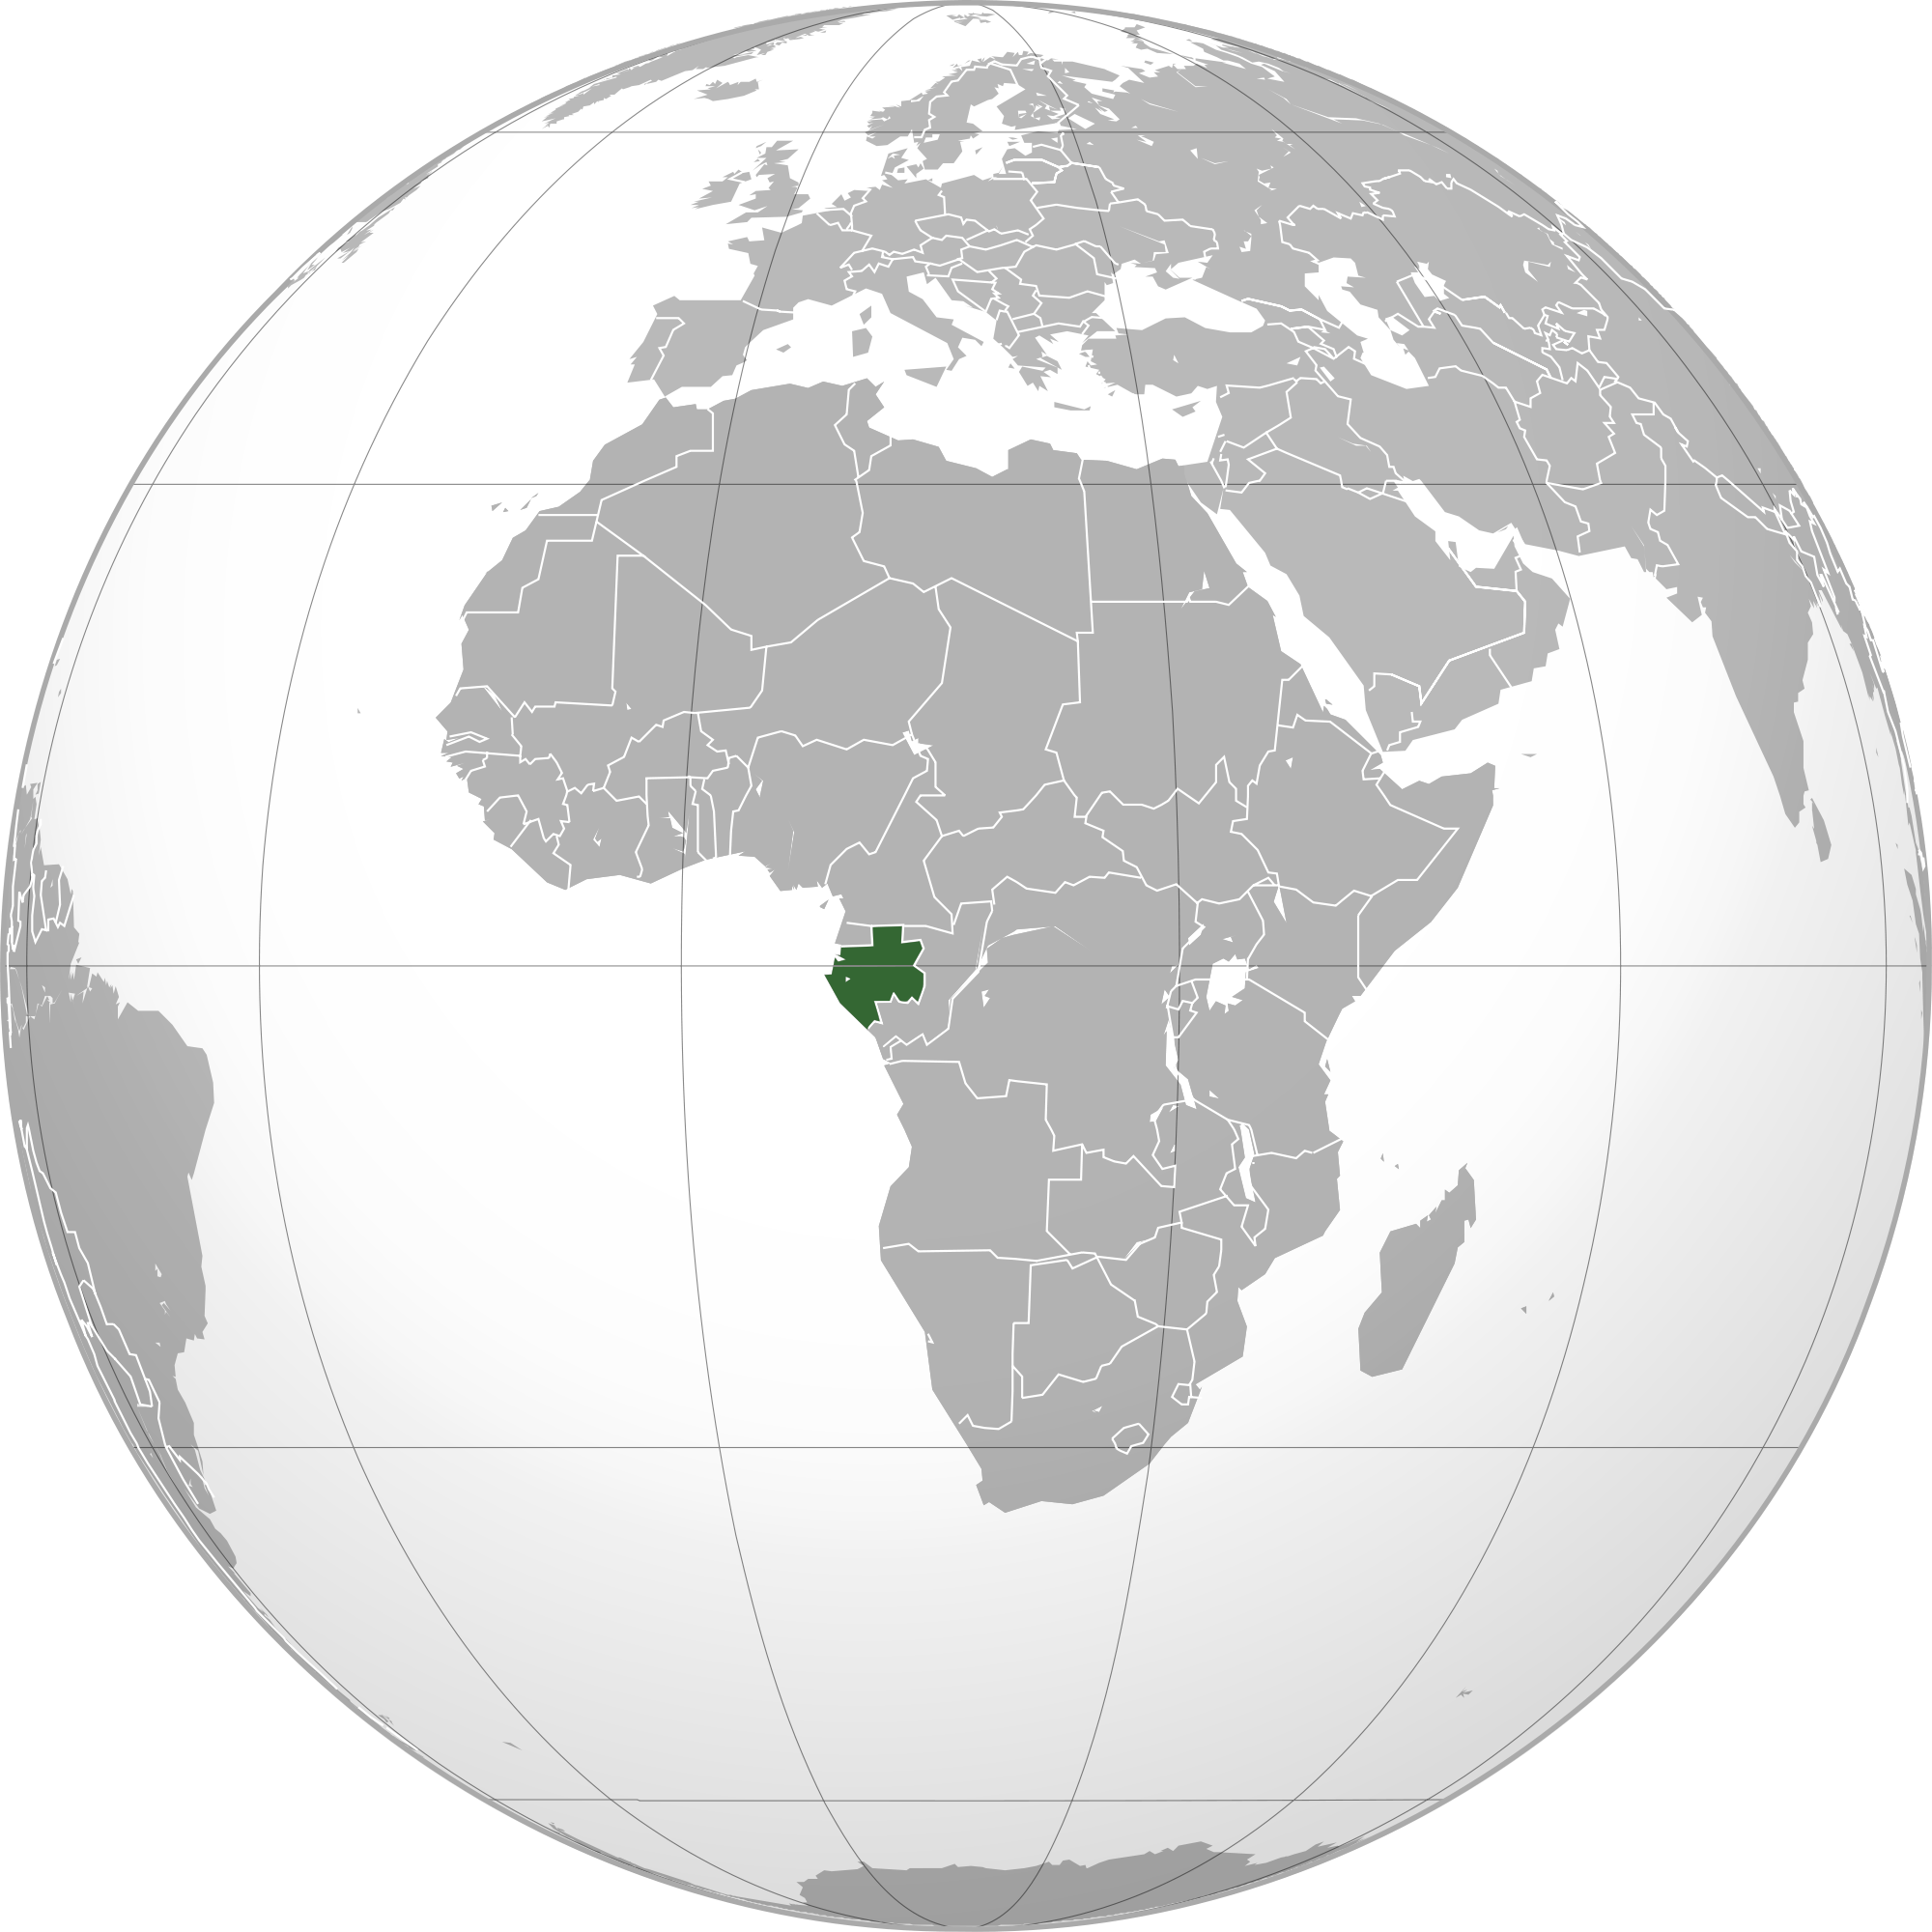 Location Of The Gabon In The World Map - Where is gabon on the world map